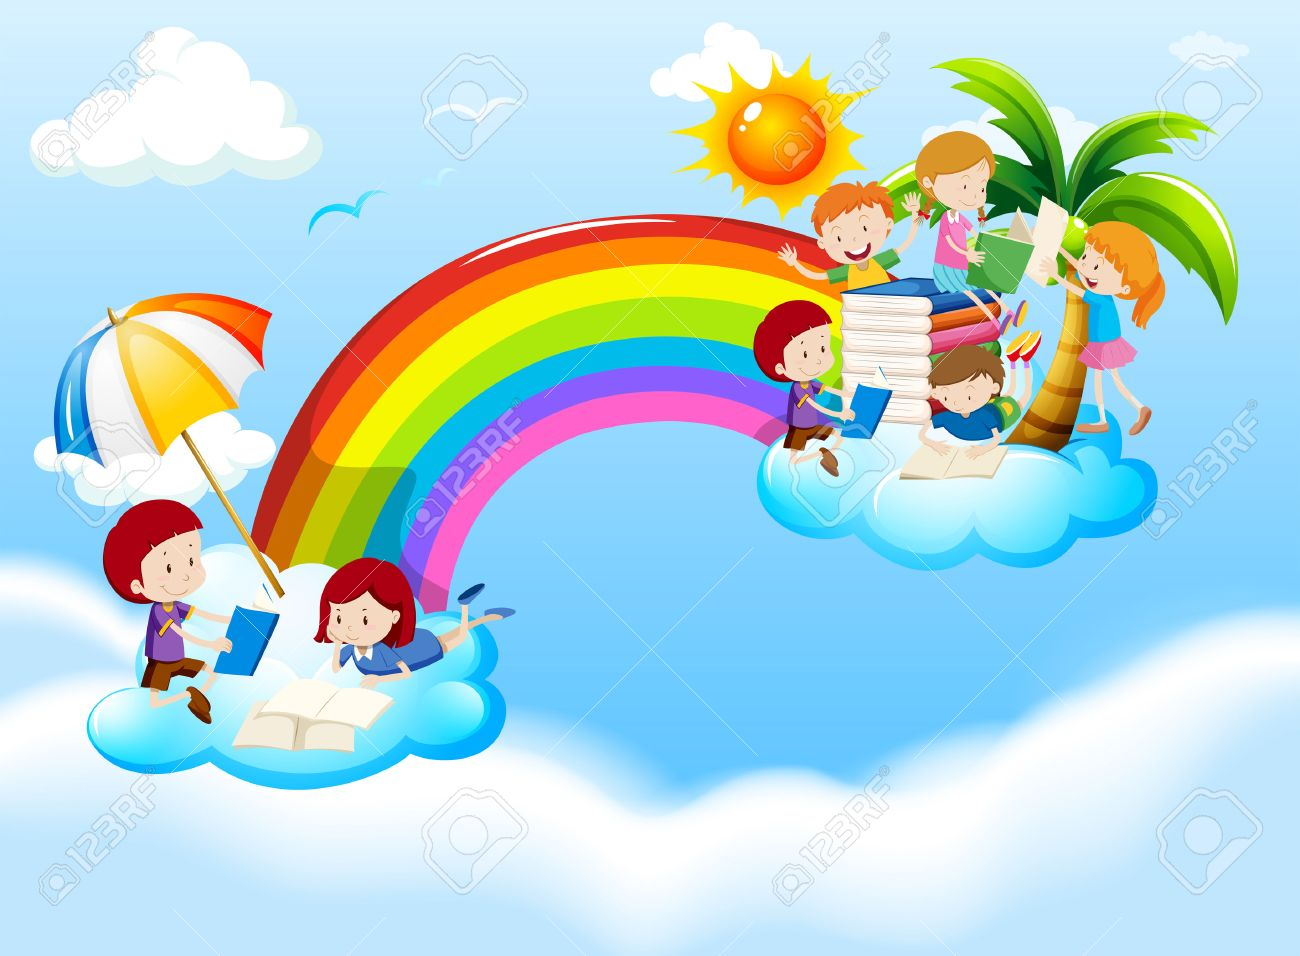 52039101-children-reading-books-over-the-rainbow-illustration-Stock-Photo